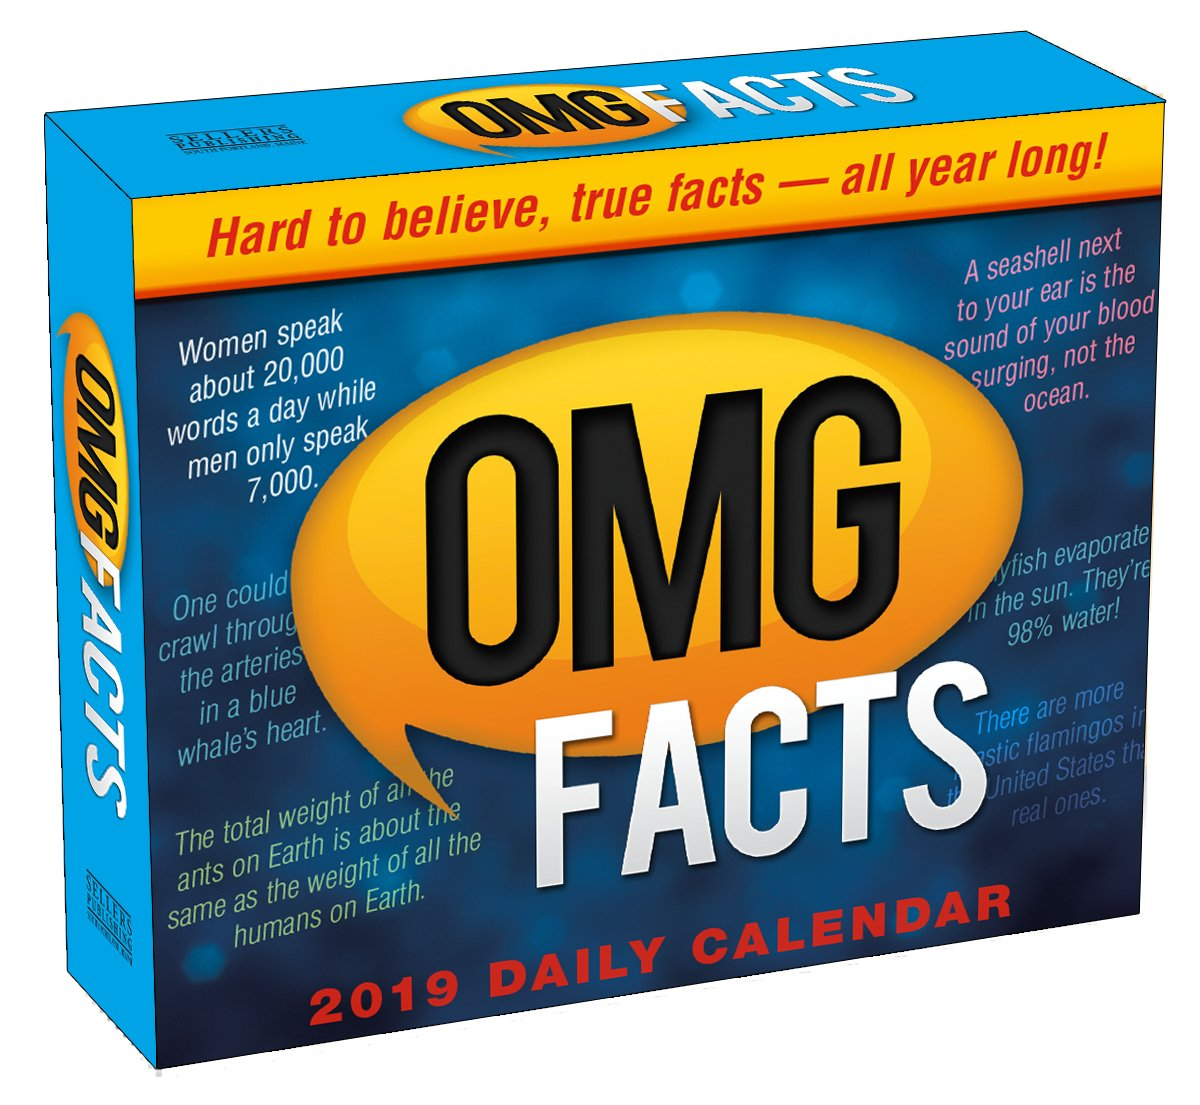 2019 omg facts boxed daily calendar by sellers publishing 6 x 5 cb 0518 spartz media 0764453005189 amazoncom books